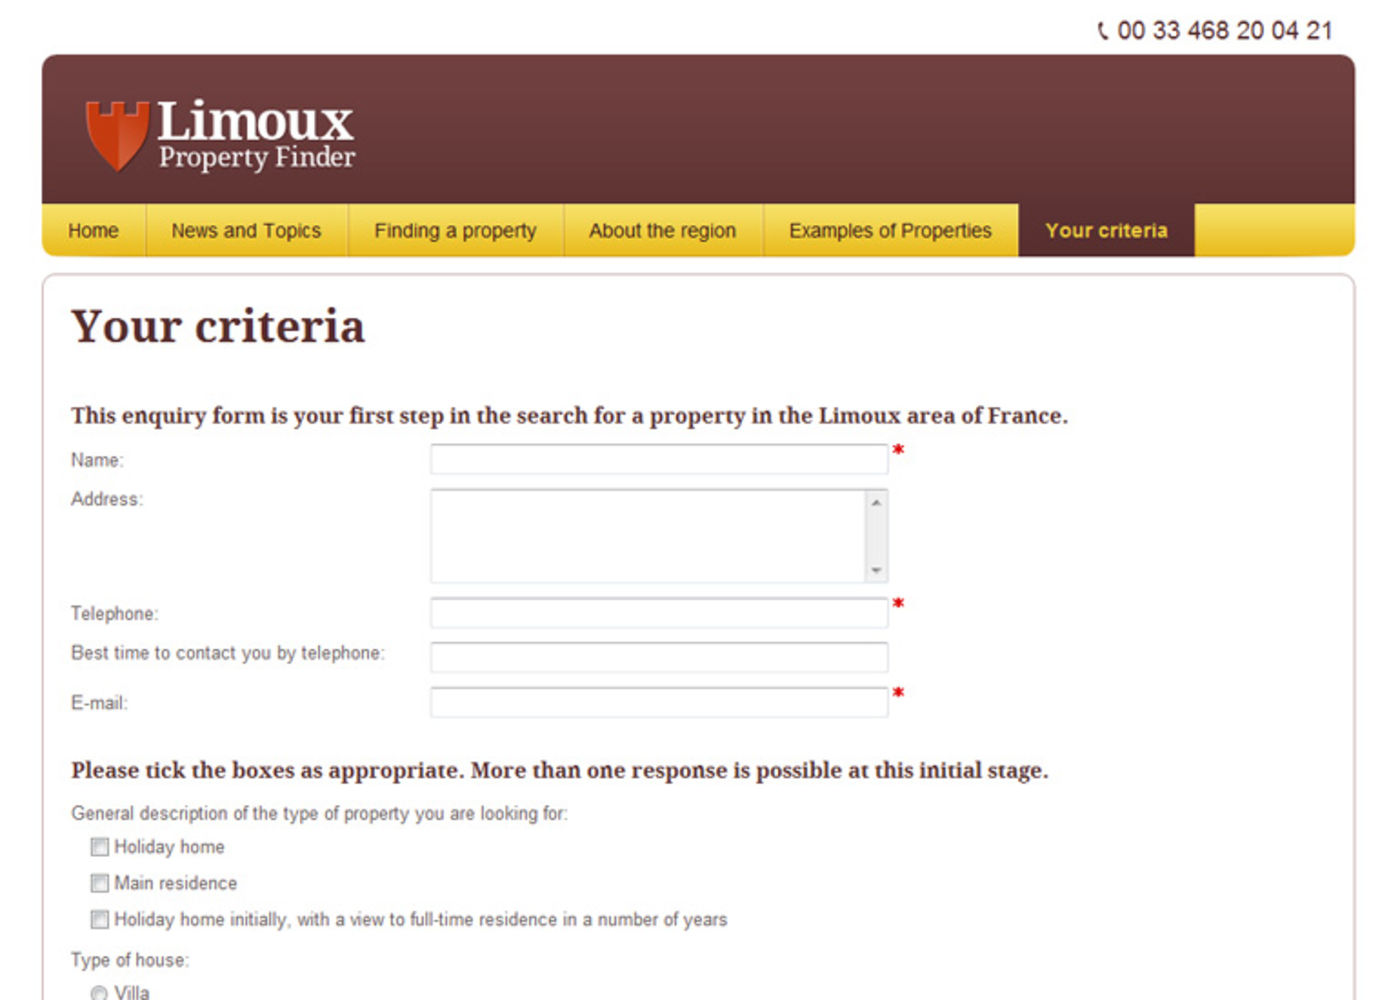 Limoux Property Finder Form - Your criteria